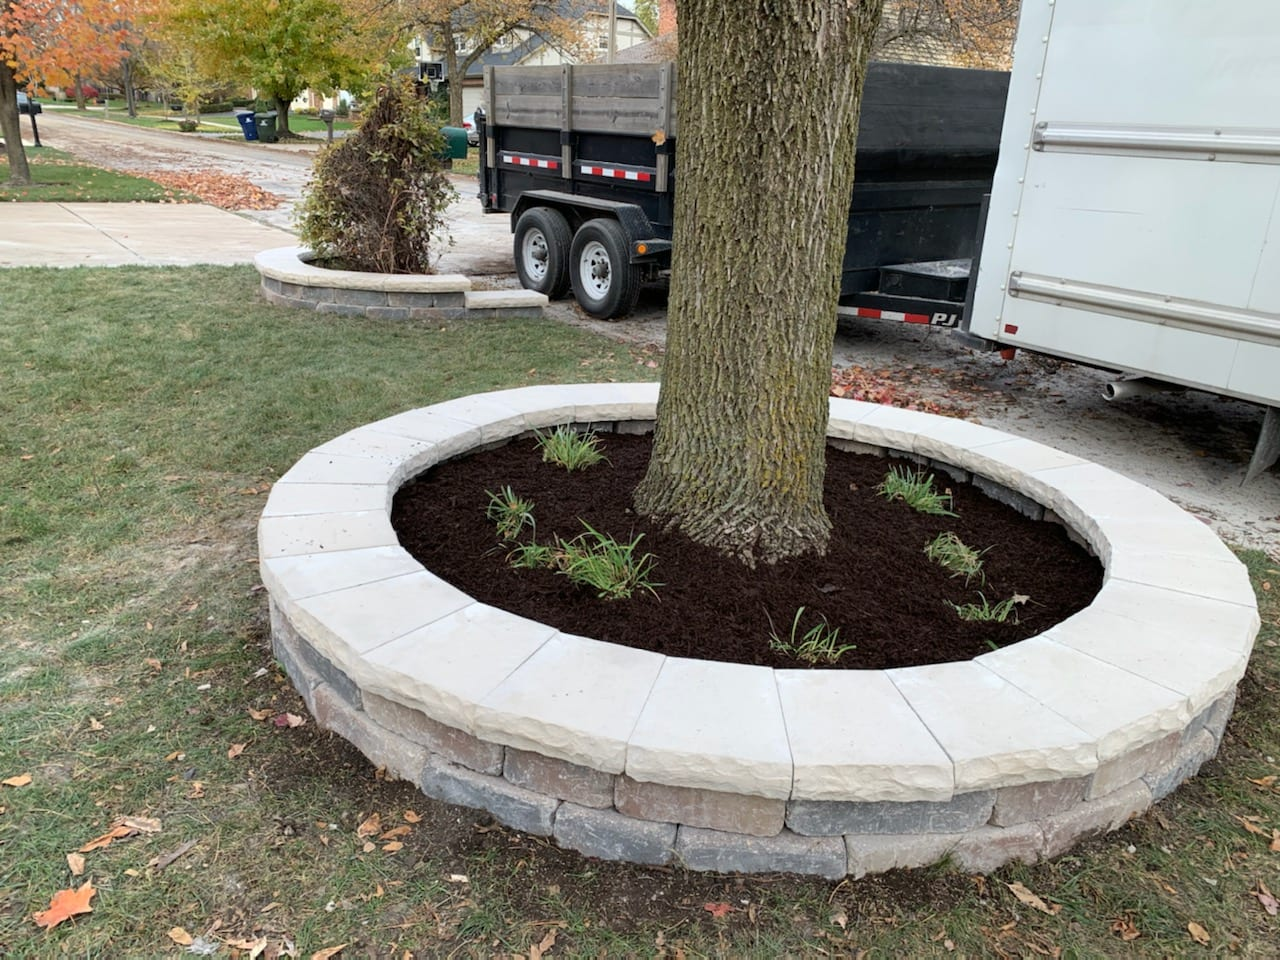 tree with paver circle aztech 05 17 21